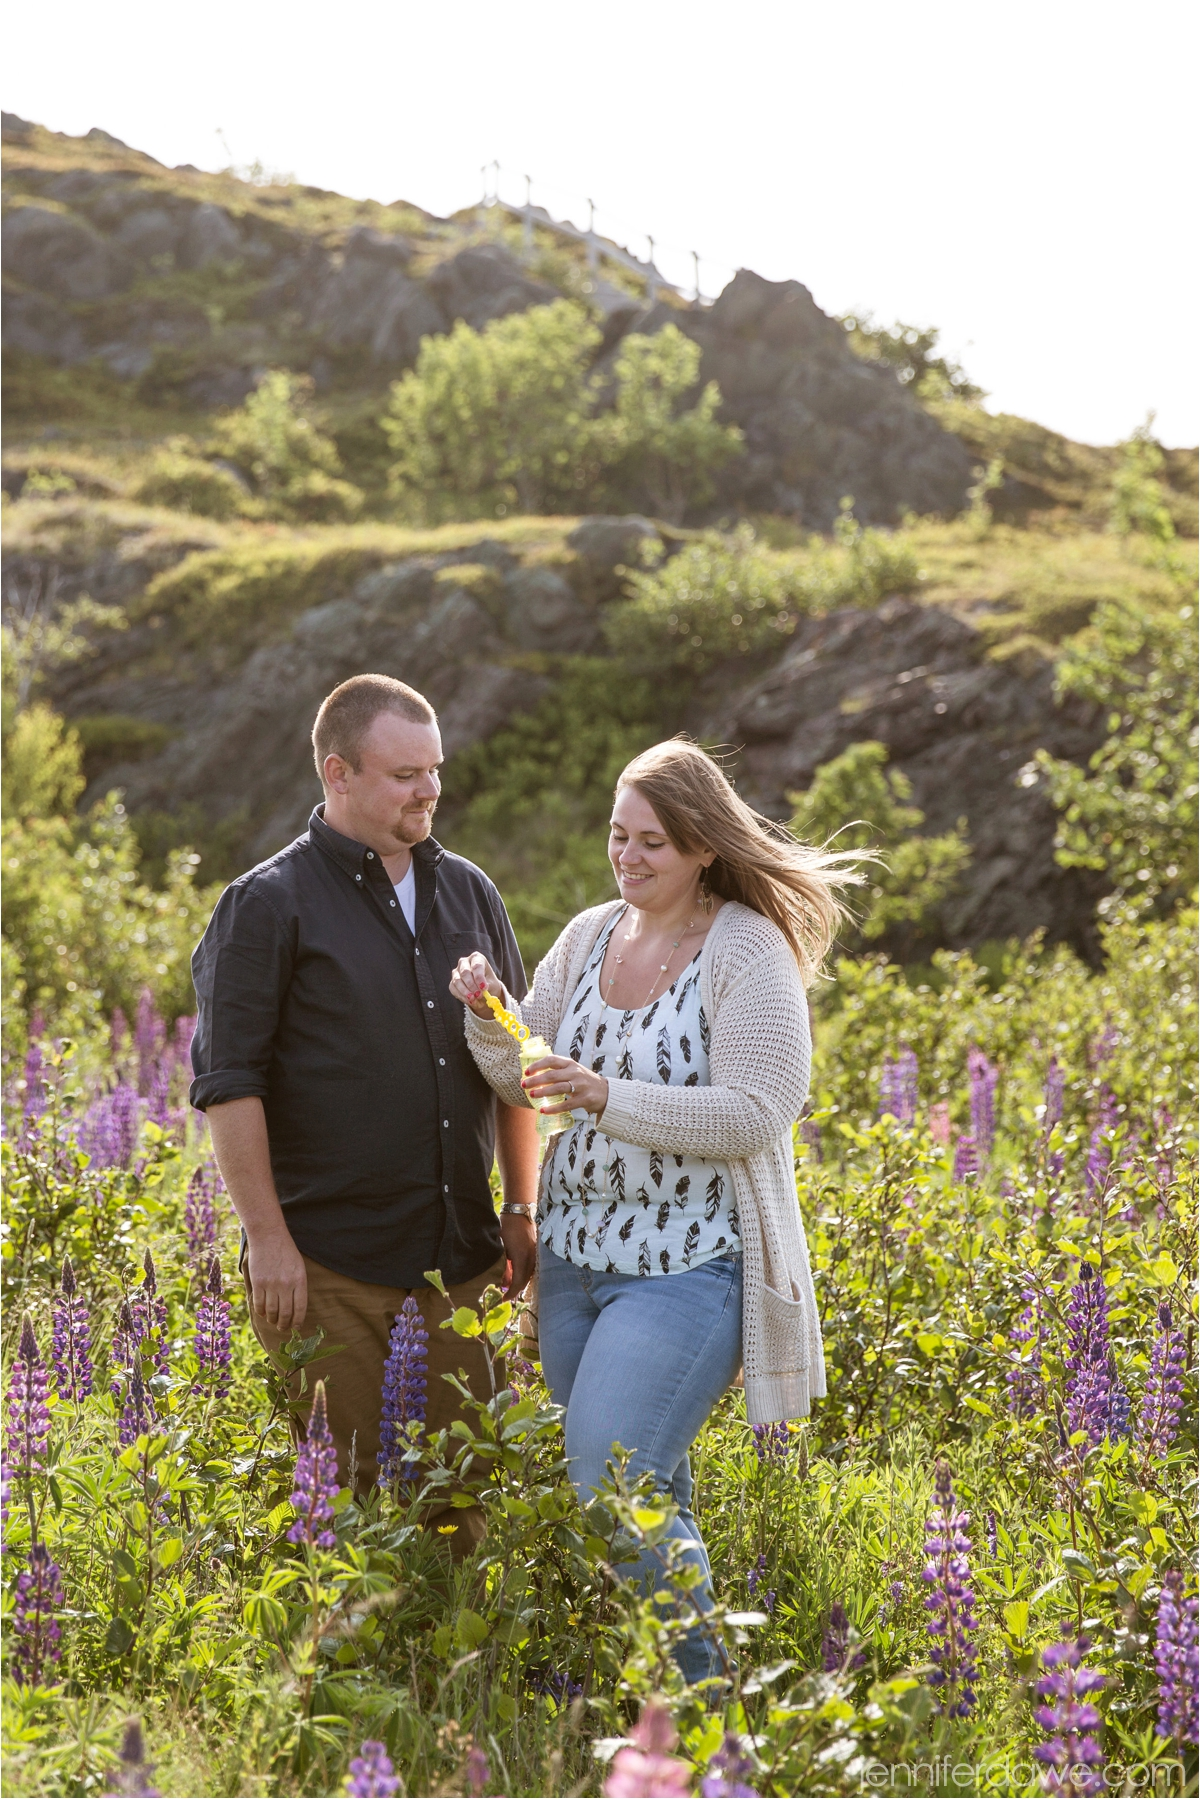 Signal Hill Engagement Session Lupin Engagement Session Best St John's Newfoundland Wedding Photographer7